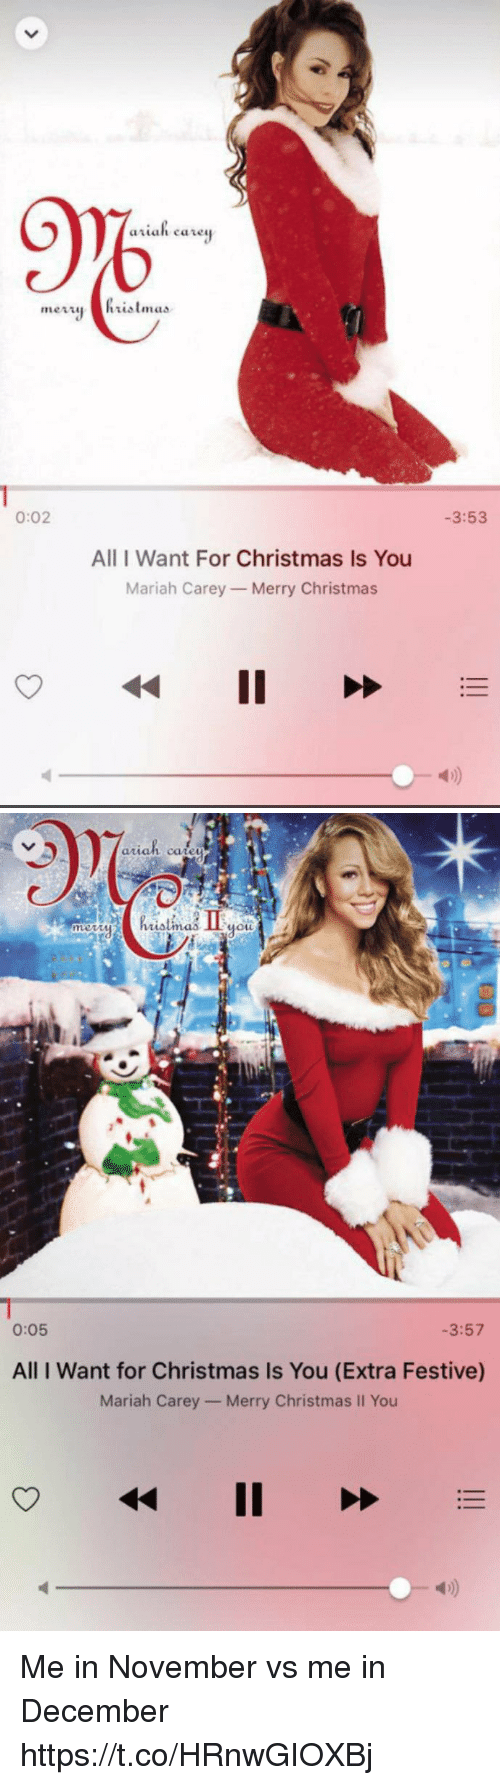 All I Want for Christmas is You: 9%  -3:53  0:02  All I Want For Christmas Is You  Mariah Carey Merry Christmas  4D)   arian ca  hrialimas  0:05  -3:57  All I Want for Christmas Is You (Extra Festive)  Mariah Carey- Merry Christmas Il You  4) Me in November vs me in December https://t.co/HRnwGIOXBj